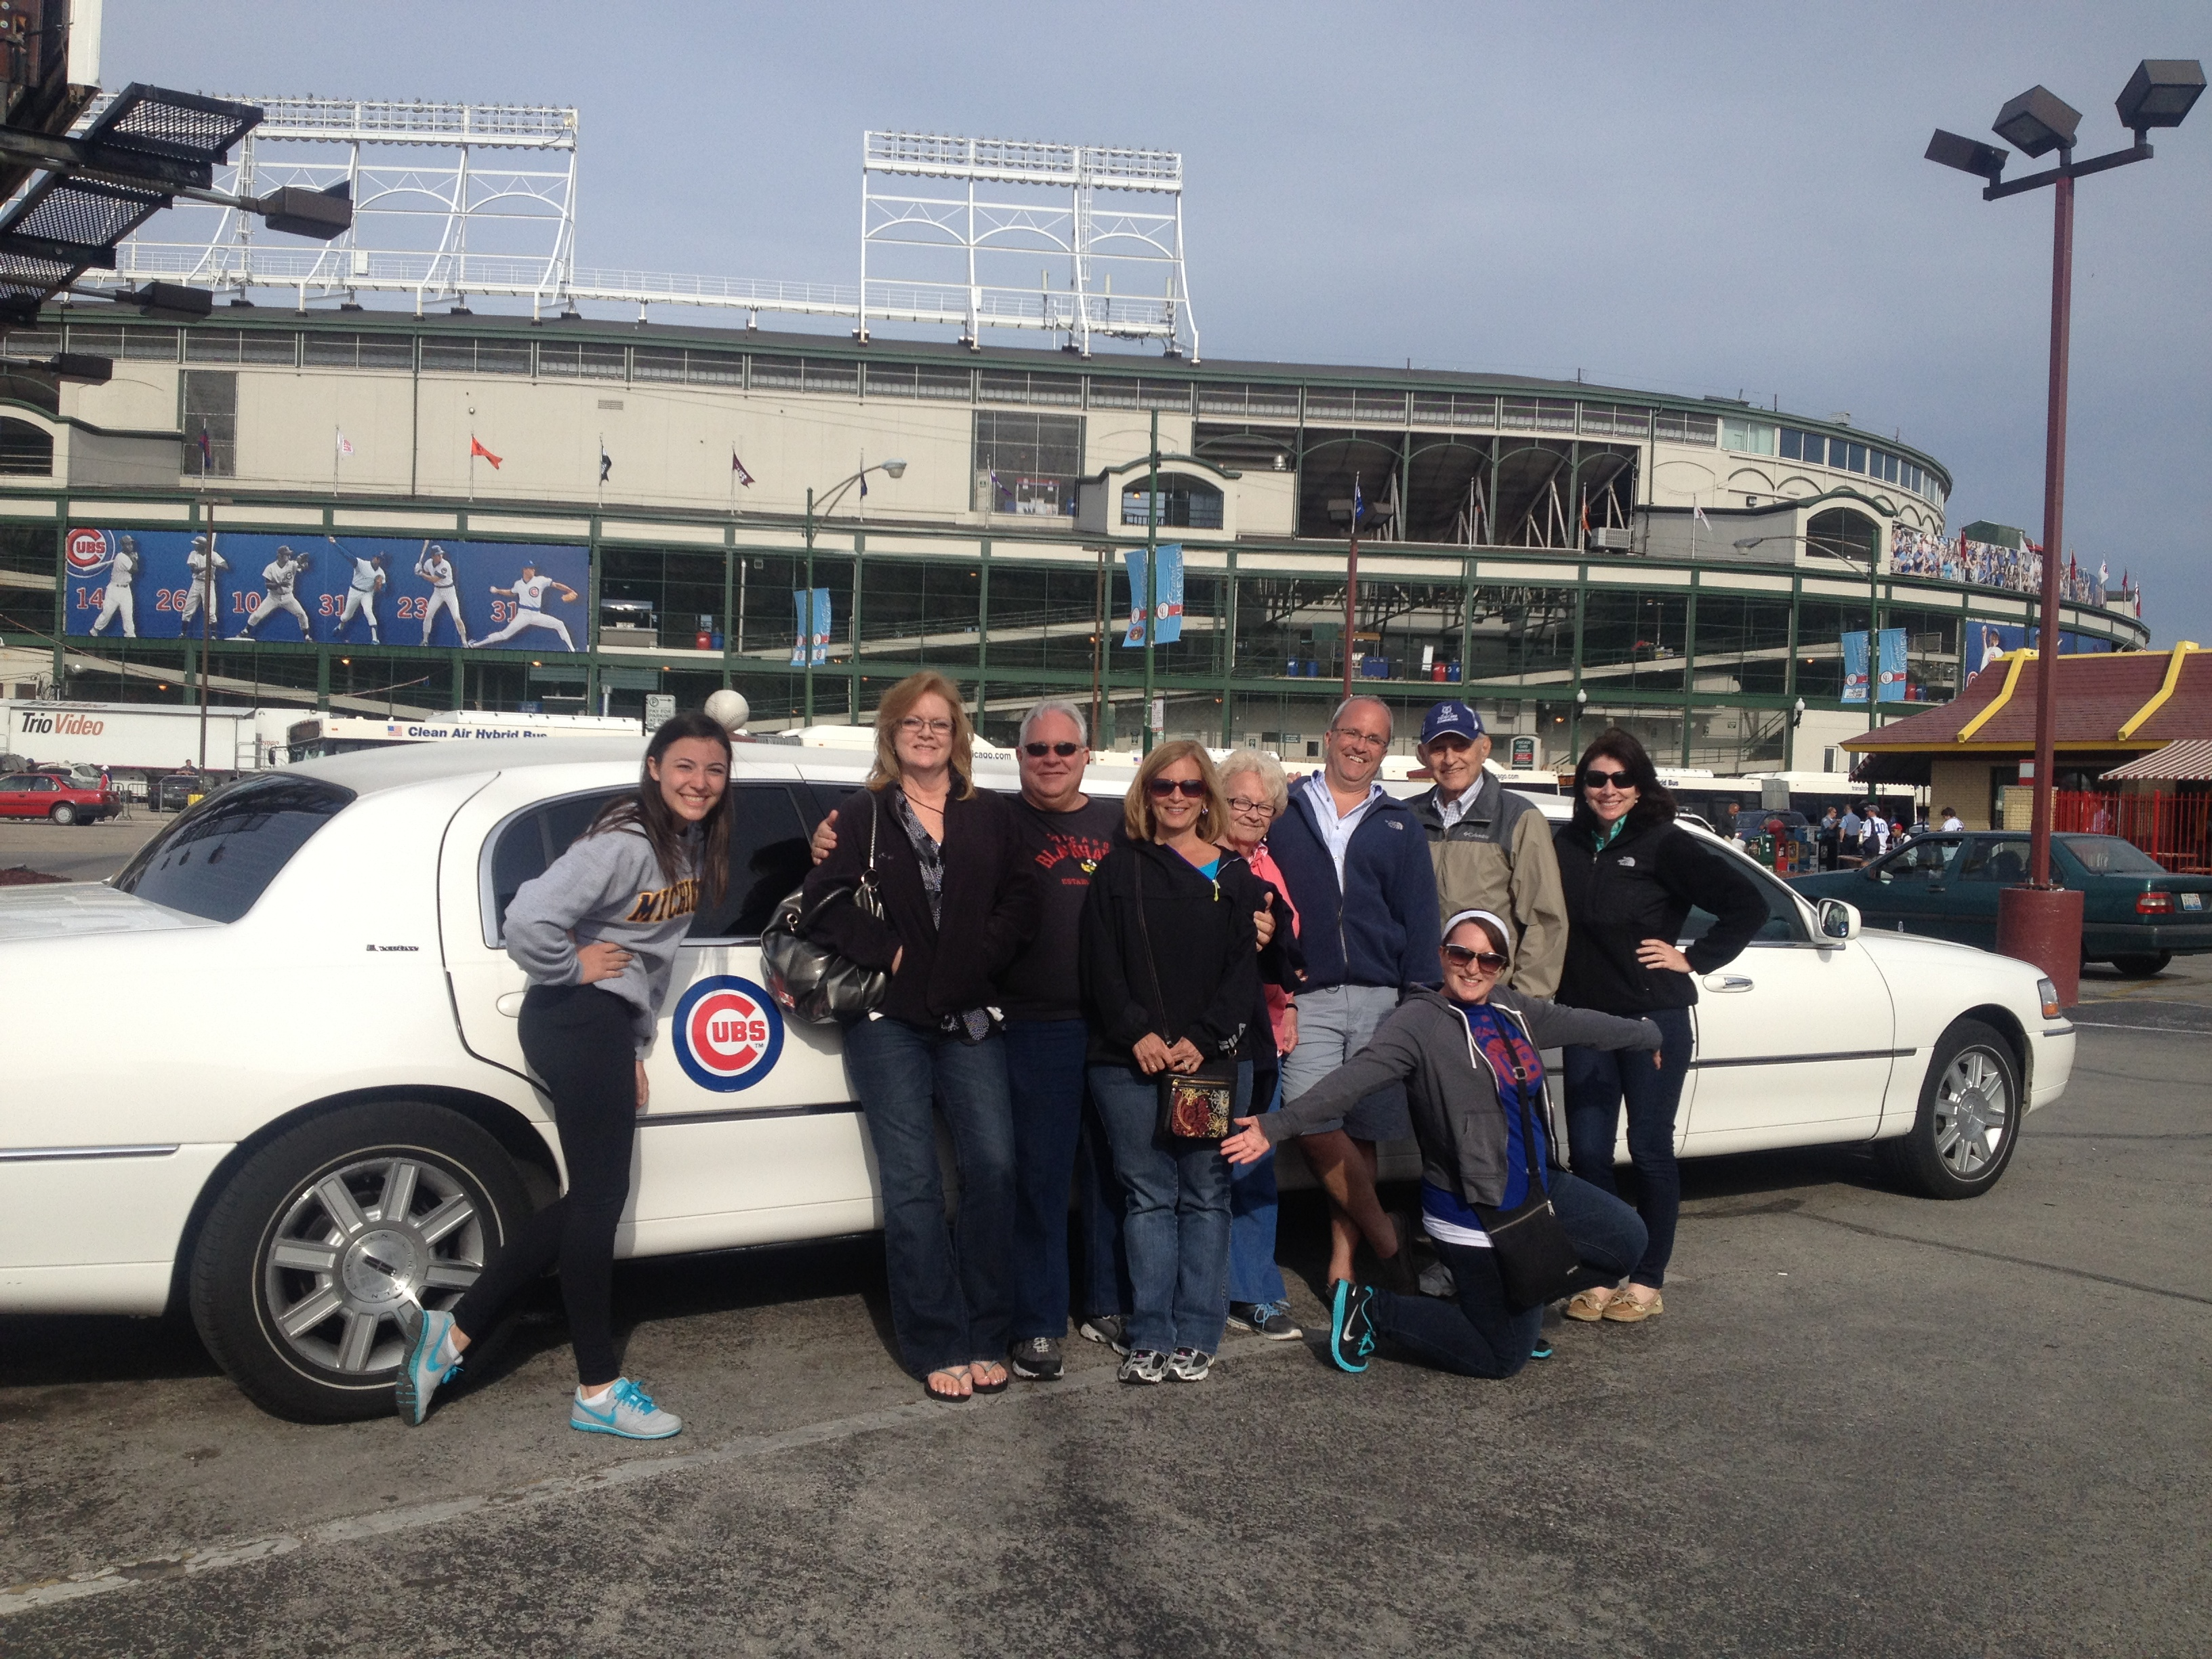 Elite Chicago Limo Customers At A Cubs Game